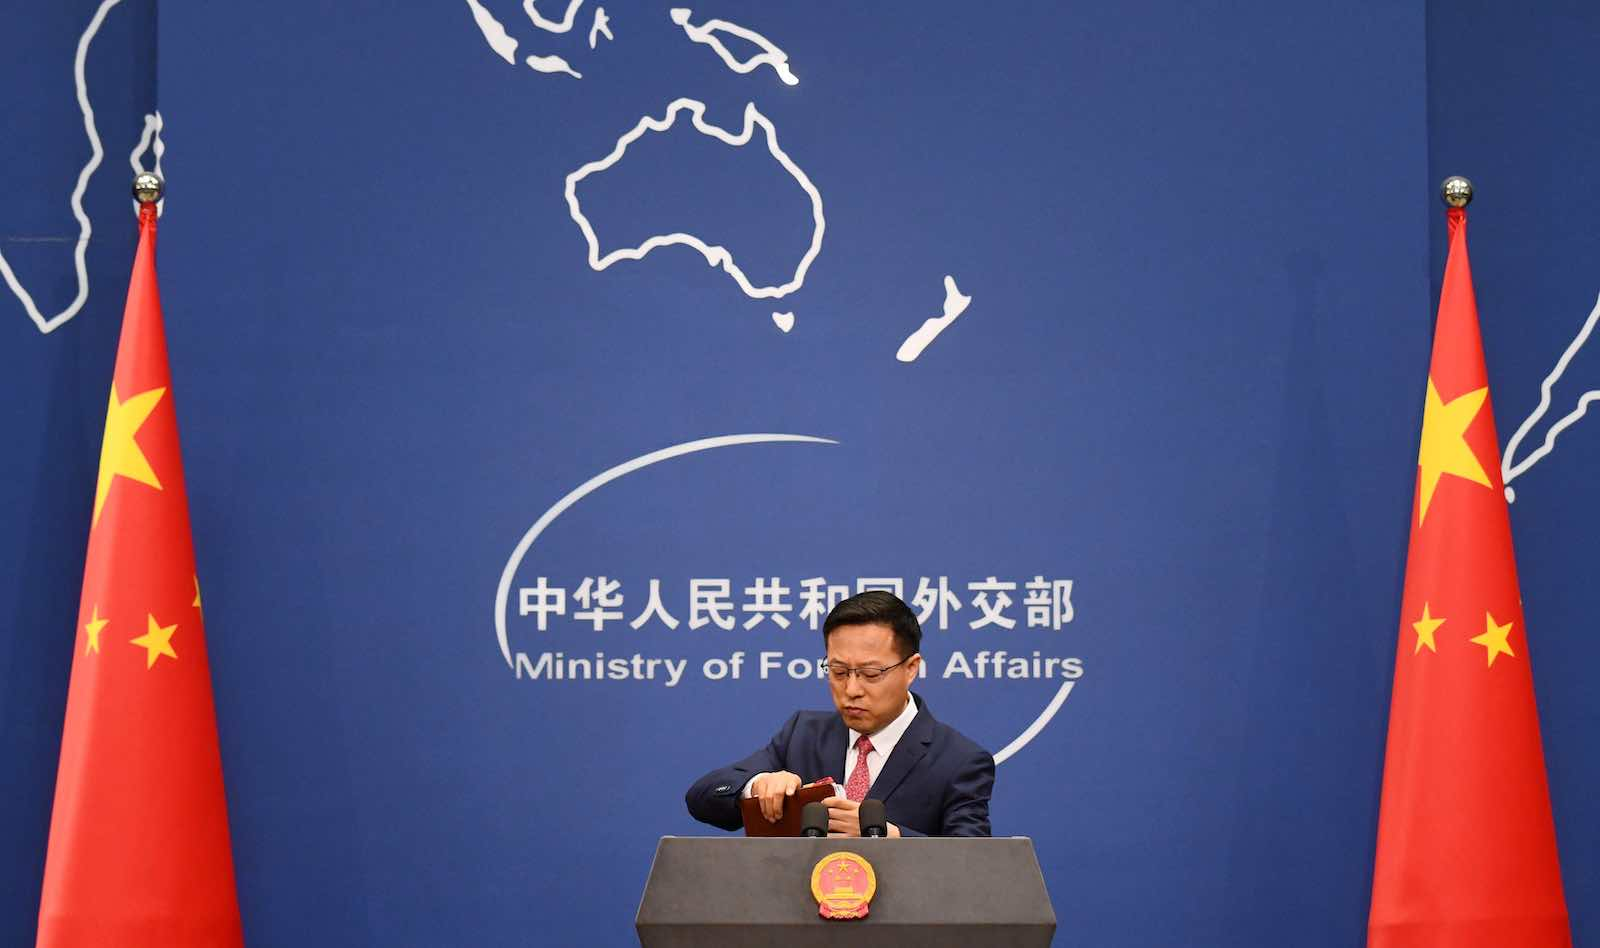 China's Foreign Ministry spokesman Zhao Lijian (Greg Barker/AFP via Getty Images)